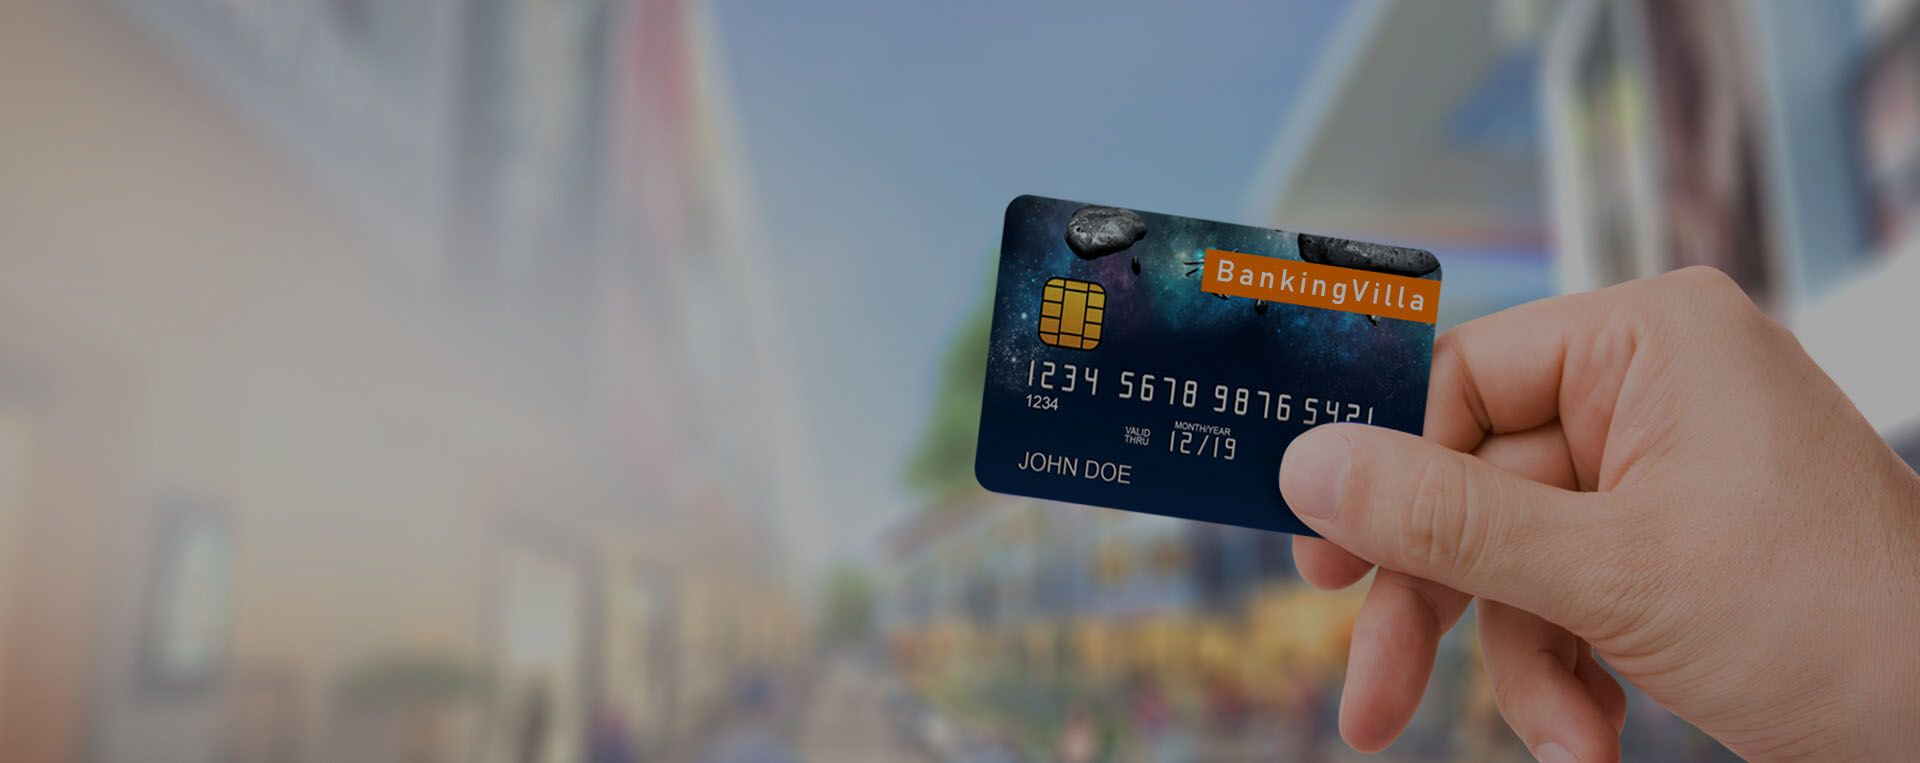 Pin By Banking Villa On Credit Card Best Credit Cards Top Banks